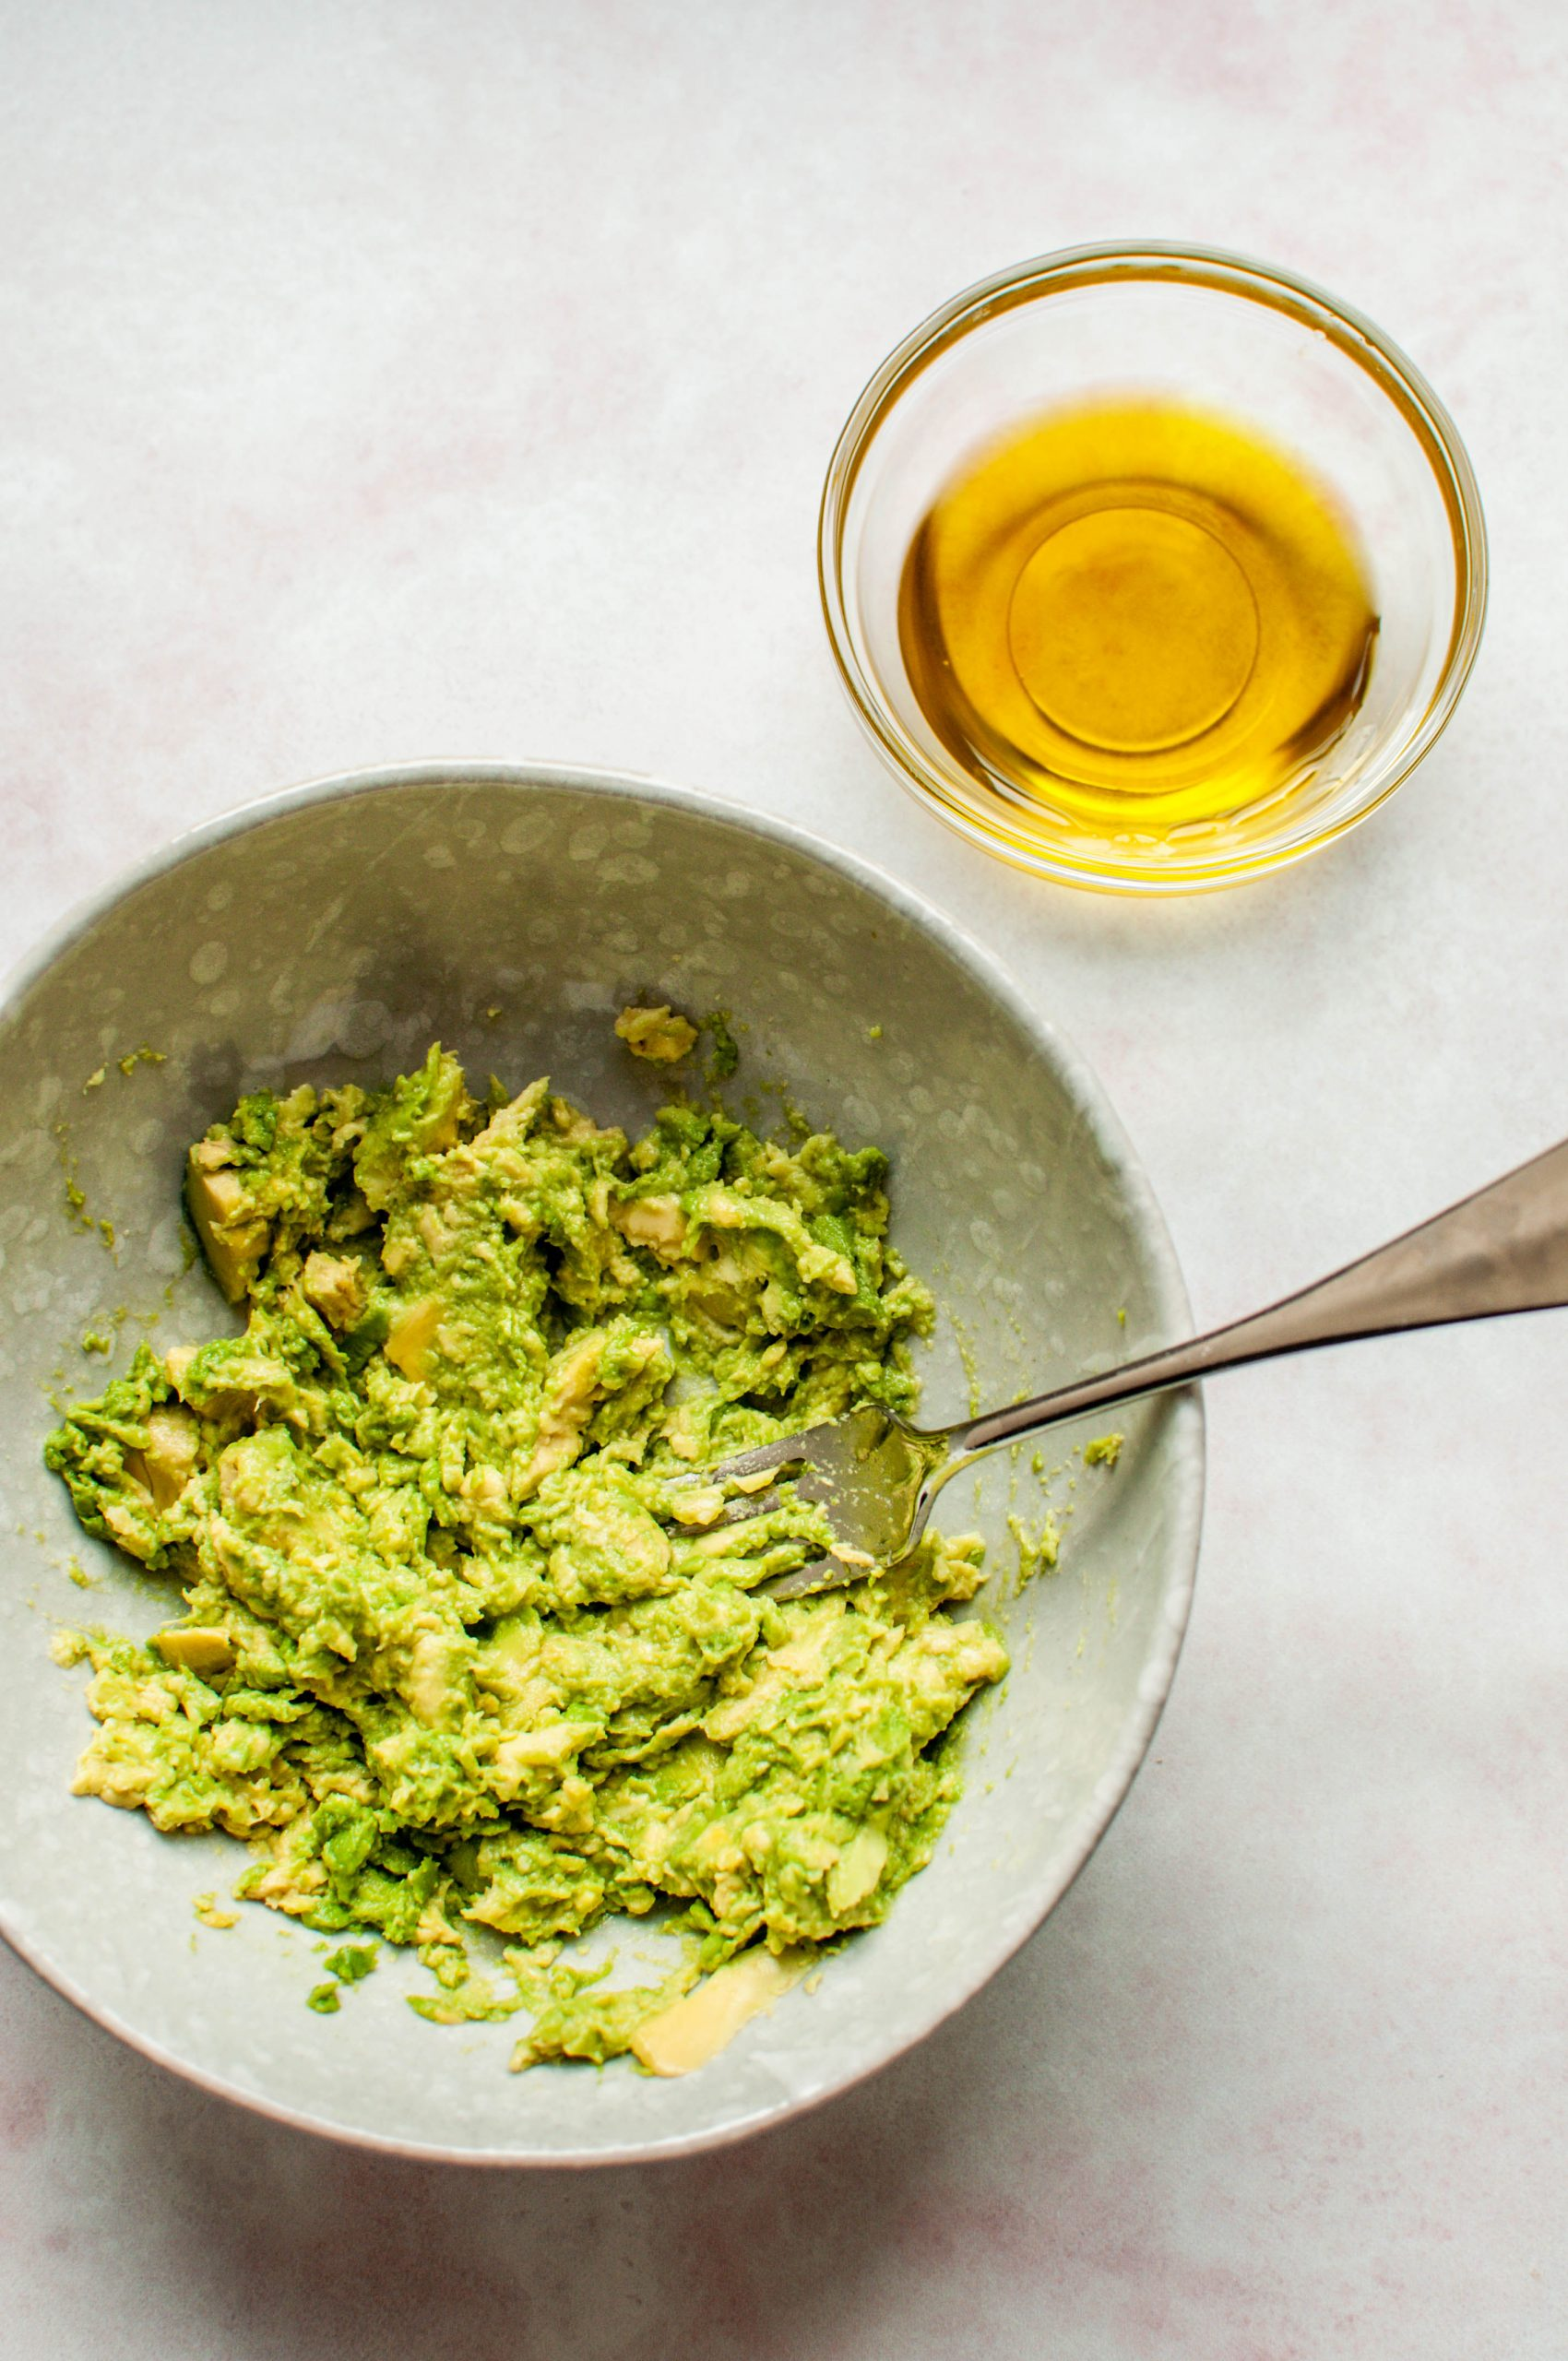 Avocado and Olive Oil for a Hair Mask